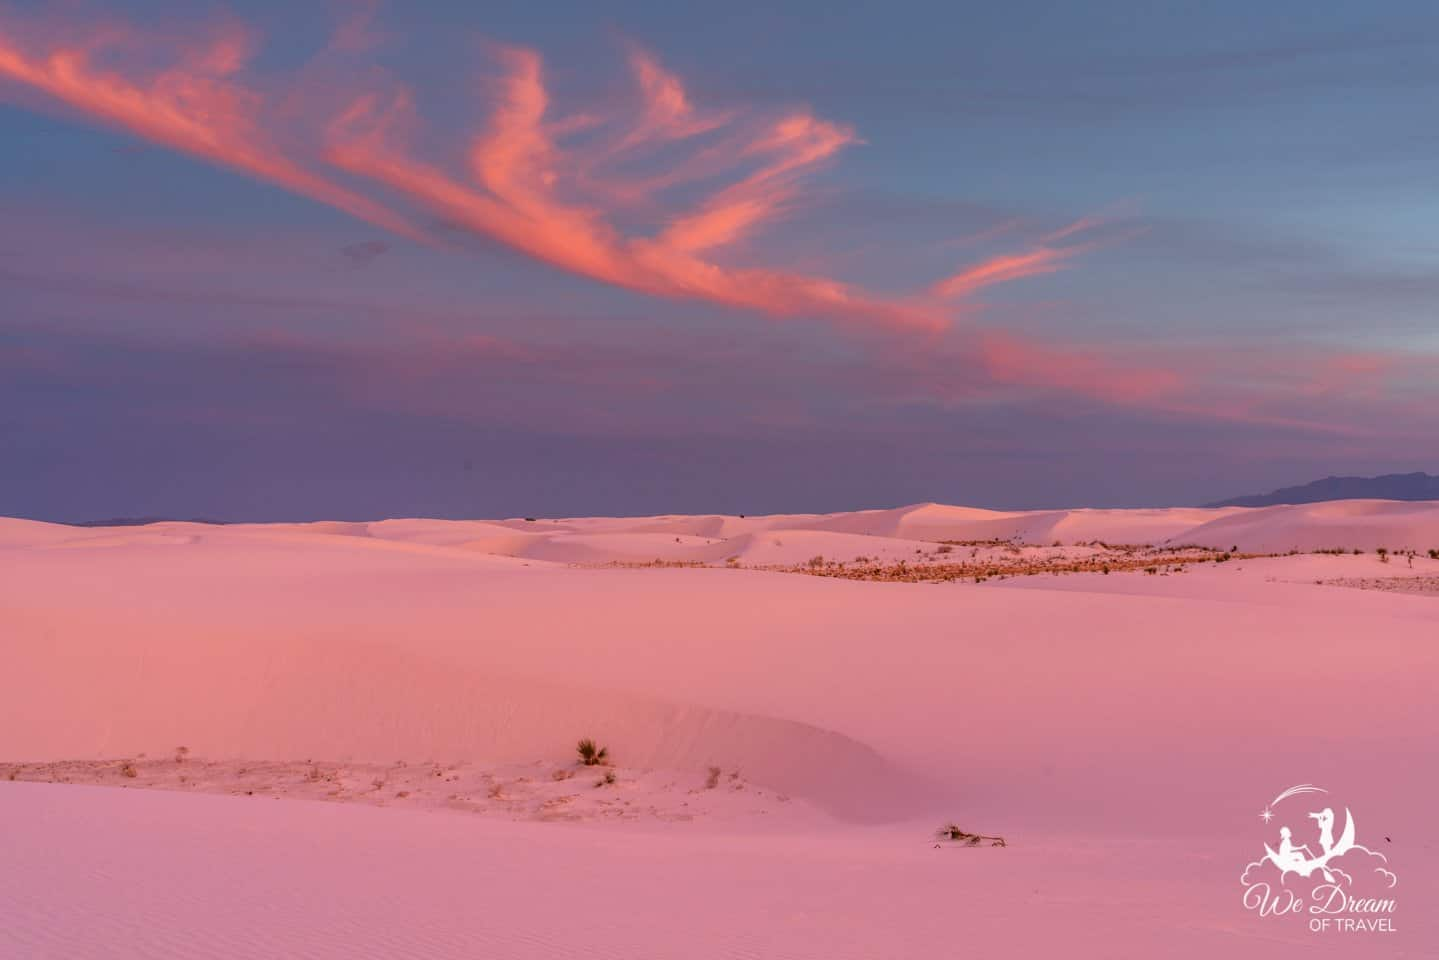 The dunes of White Sands NP glow vibrant pink during a crazy sunset.